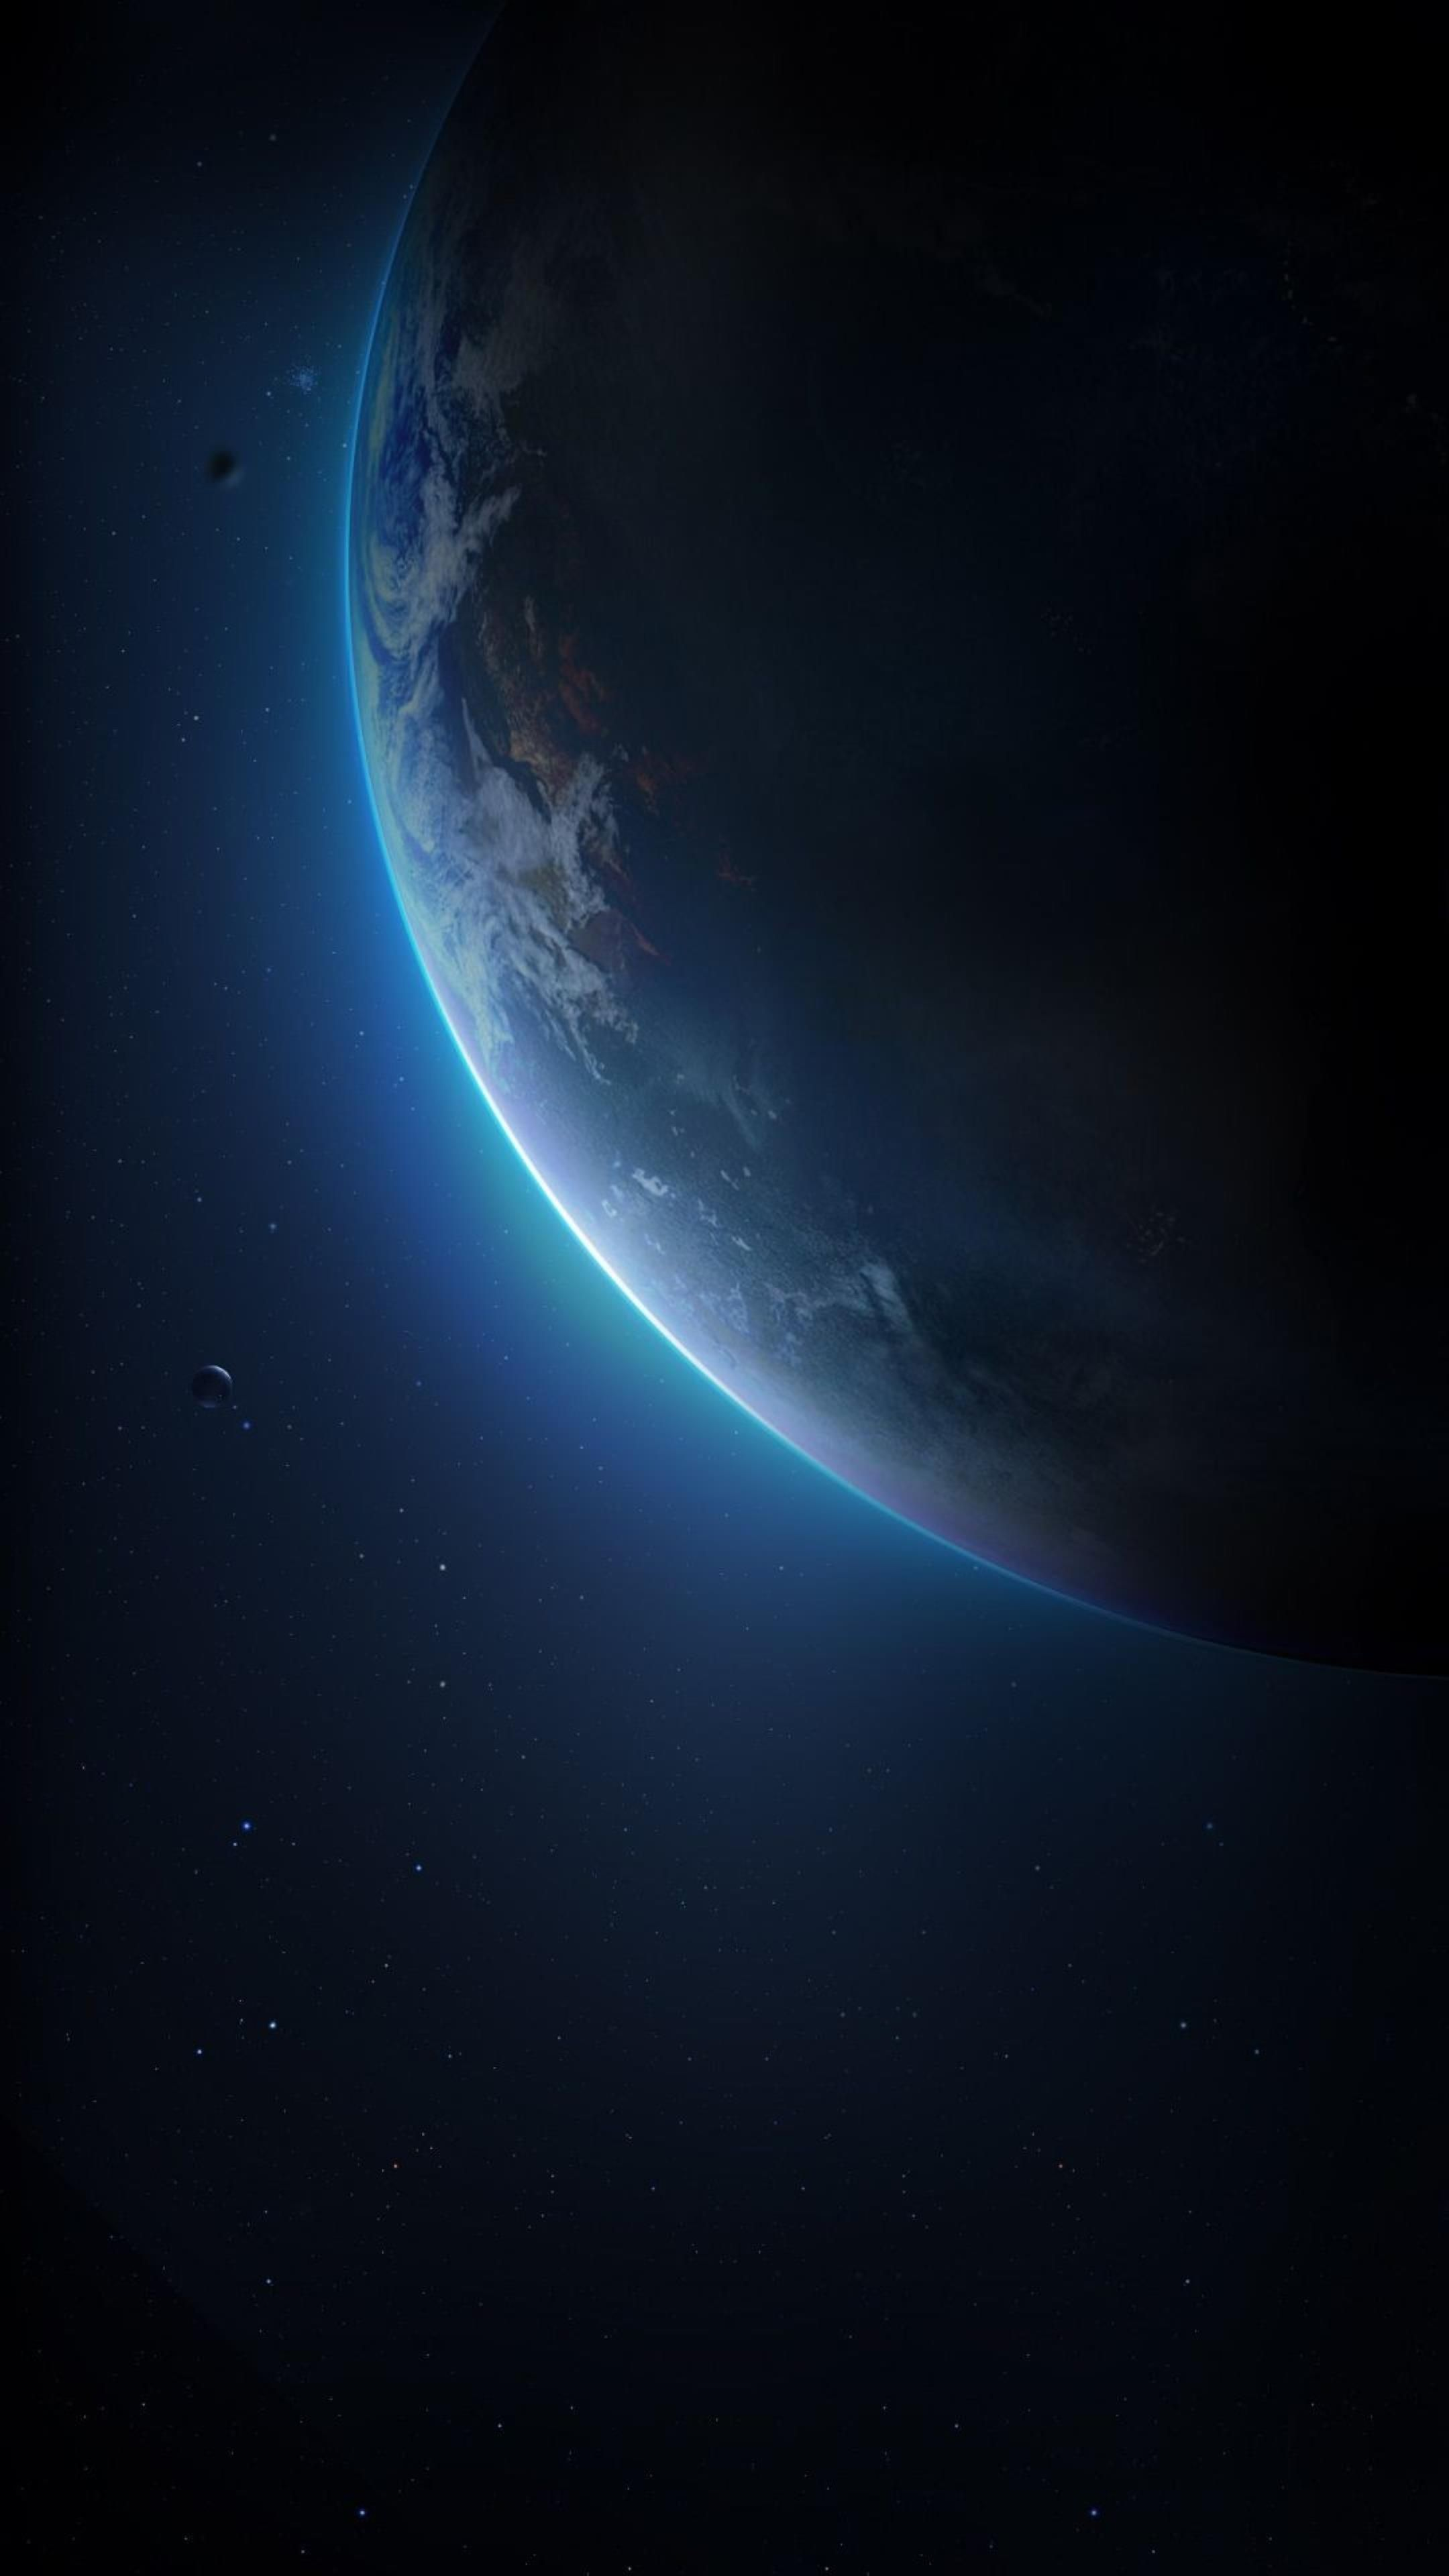 Space 4k Wallpaper 45 Wallpaper Earth Planets Wallpaper